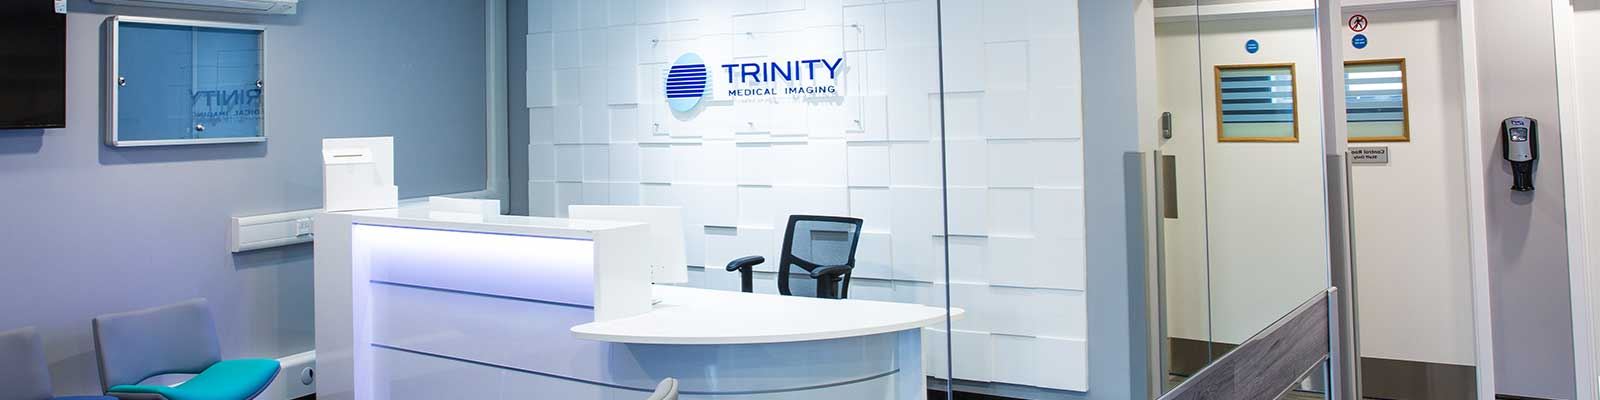 Trinity Medical Imaging